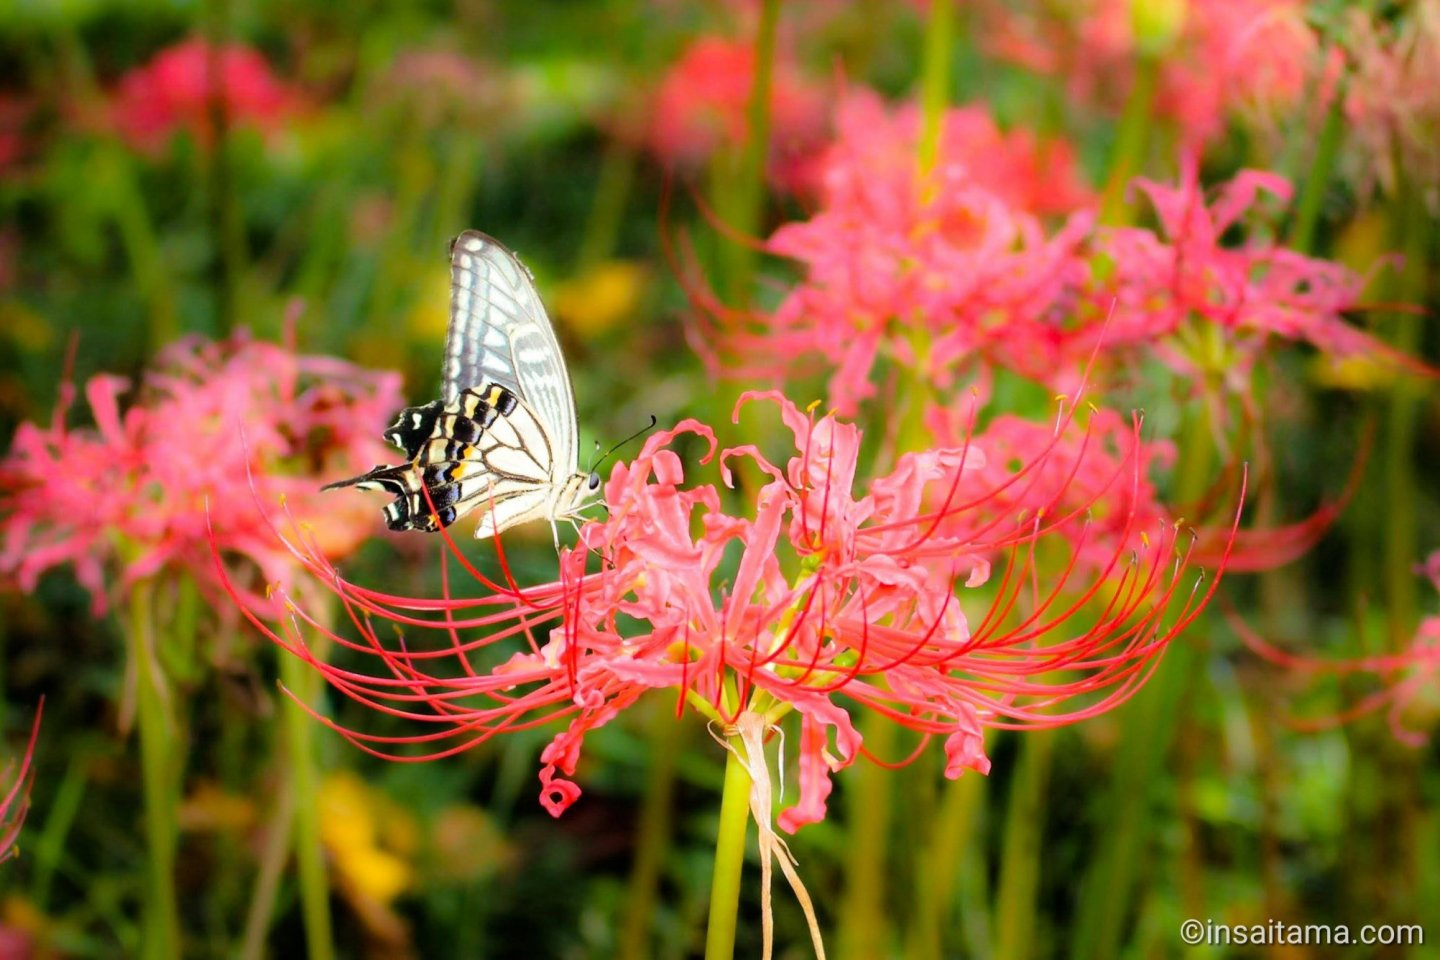 Red spider lily and butterfly, Saitama Prefecture